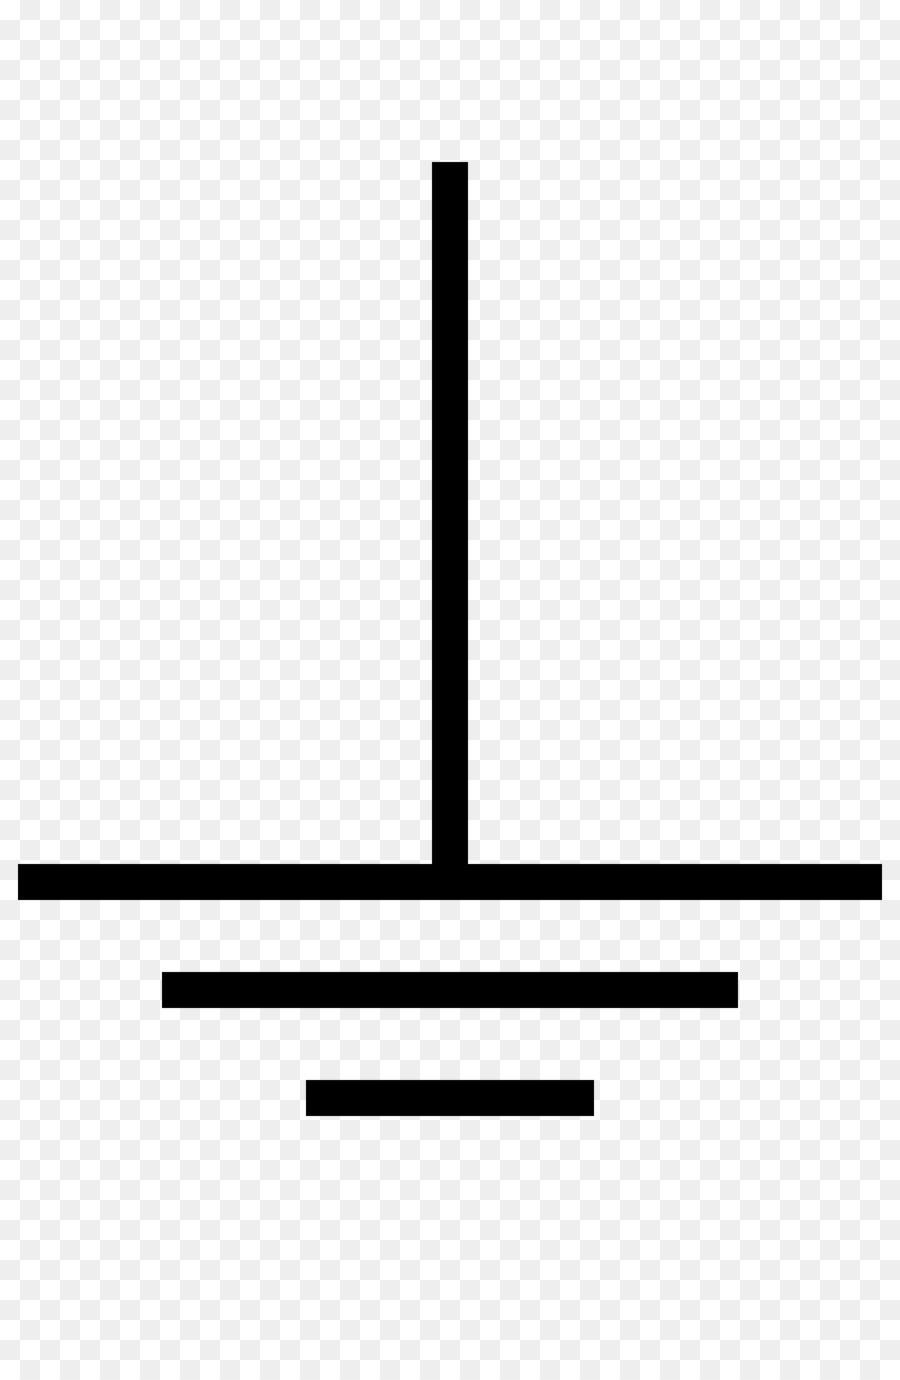 Symbol For Ground On Wiring Diagram Schematics Symbology Circuit Electrical Wires Cable Electronic Basic Hvac Symbols